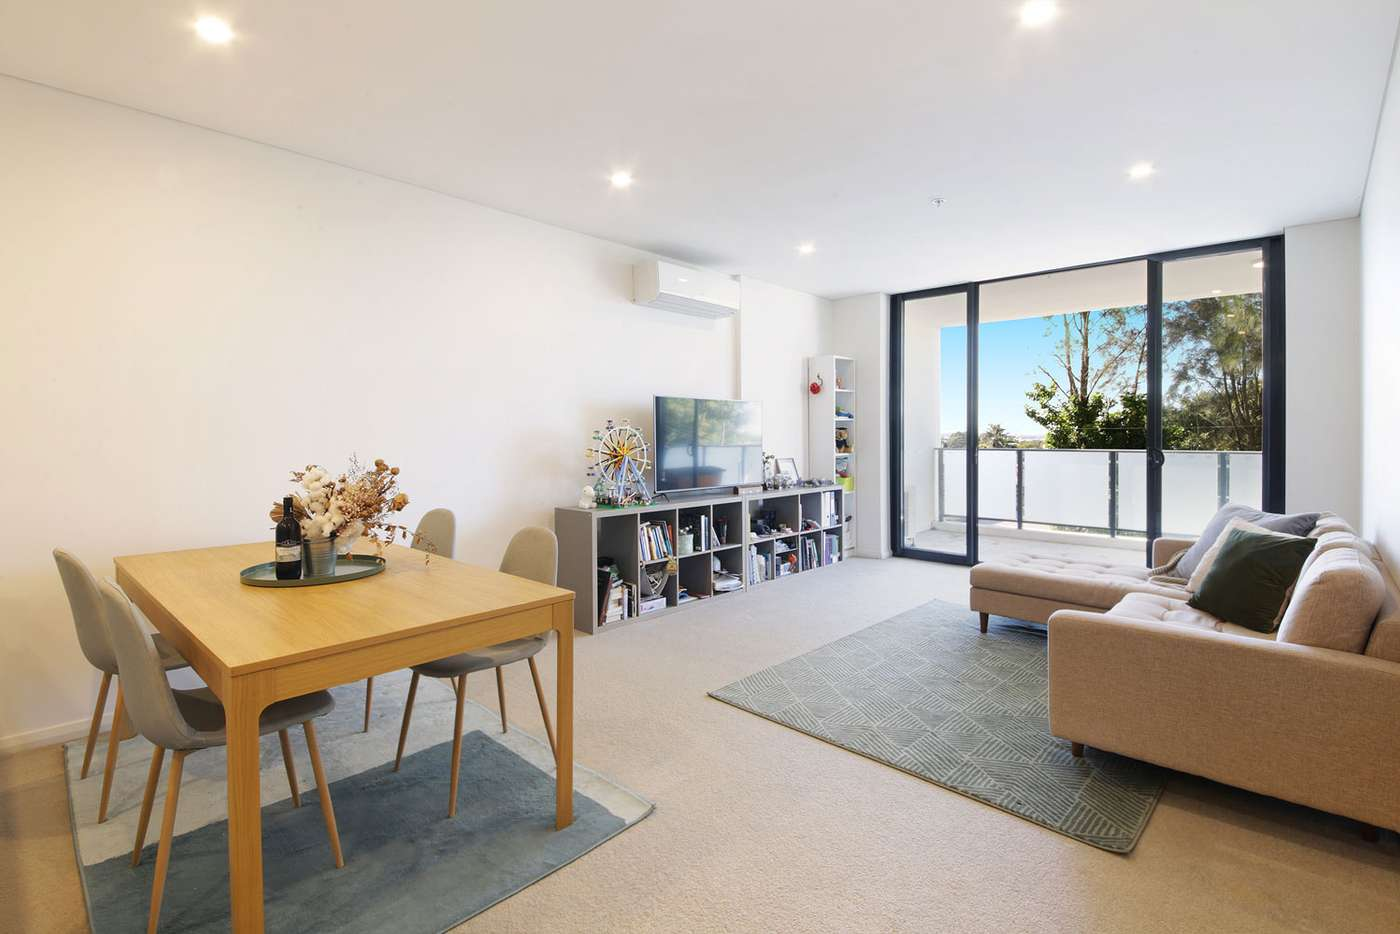 Main view of Homely apartment listing, 110/9 Kyle Street, Arncliffe NSW 2205